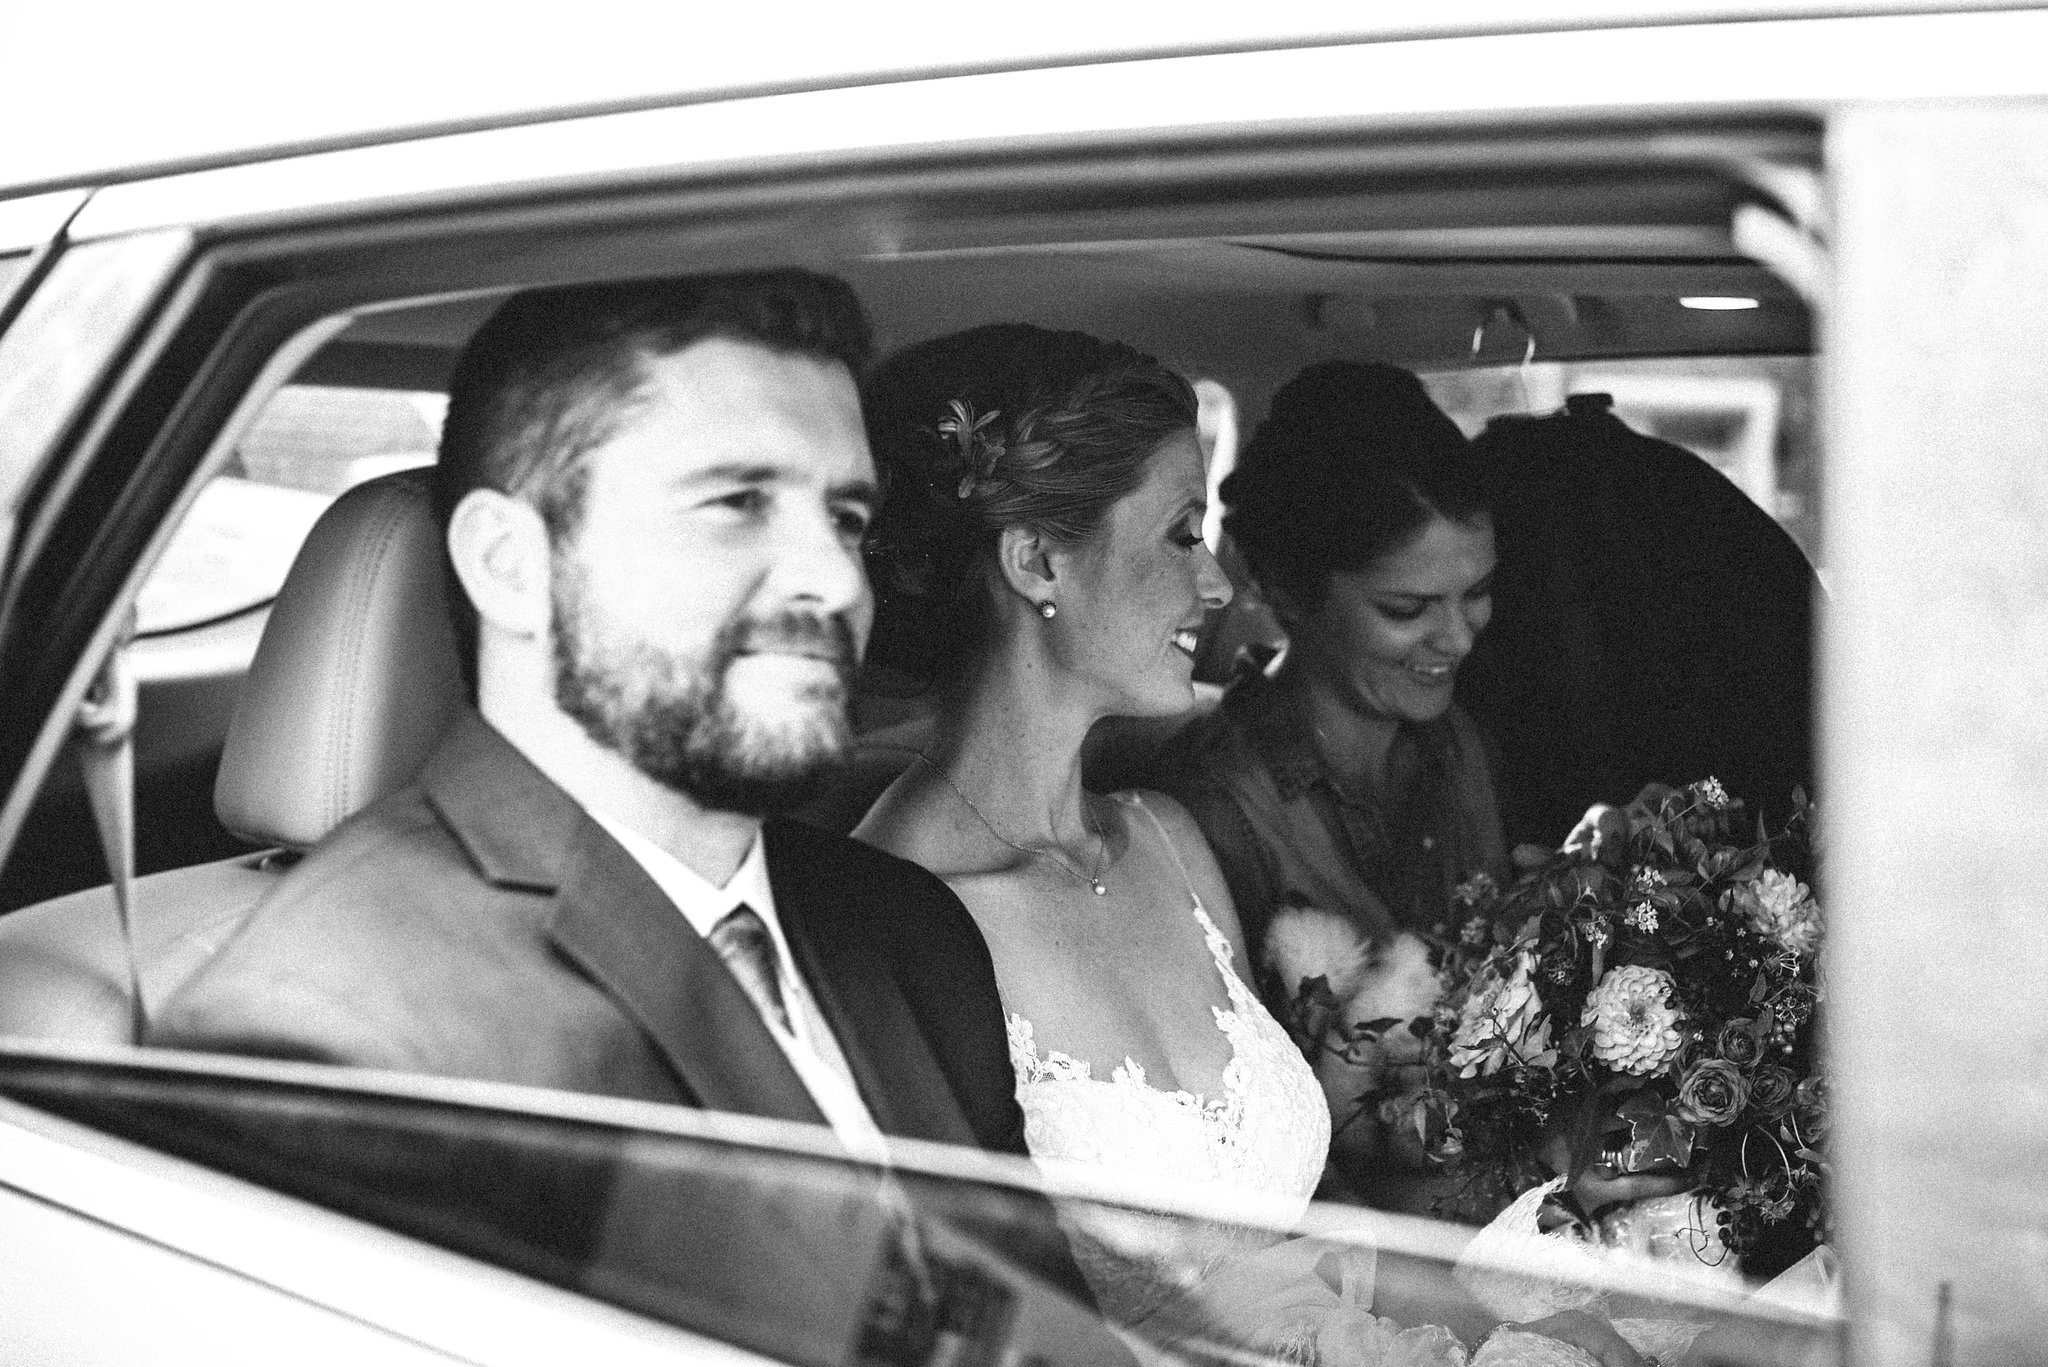 Alexandria, Virginia, Fall Wedding, Autumn, Historic Wedding, Old Town, DC, Going to the Ceremony, Black and White, The London Bob Hair Design, JoS A. Bank Suit